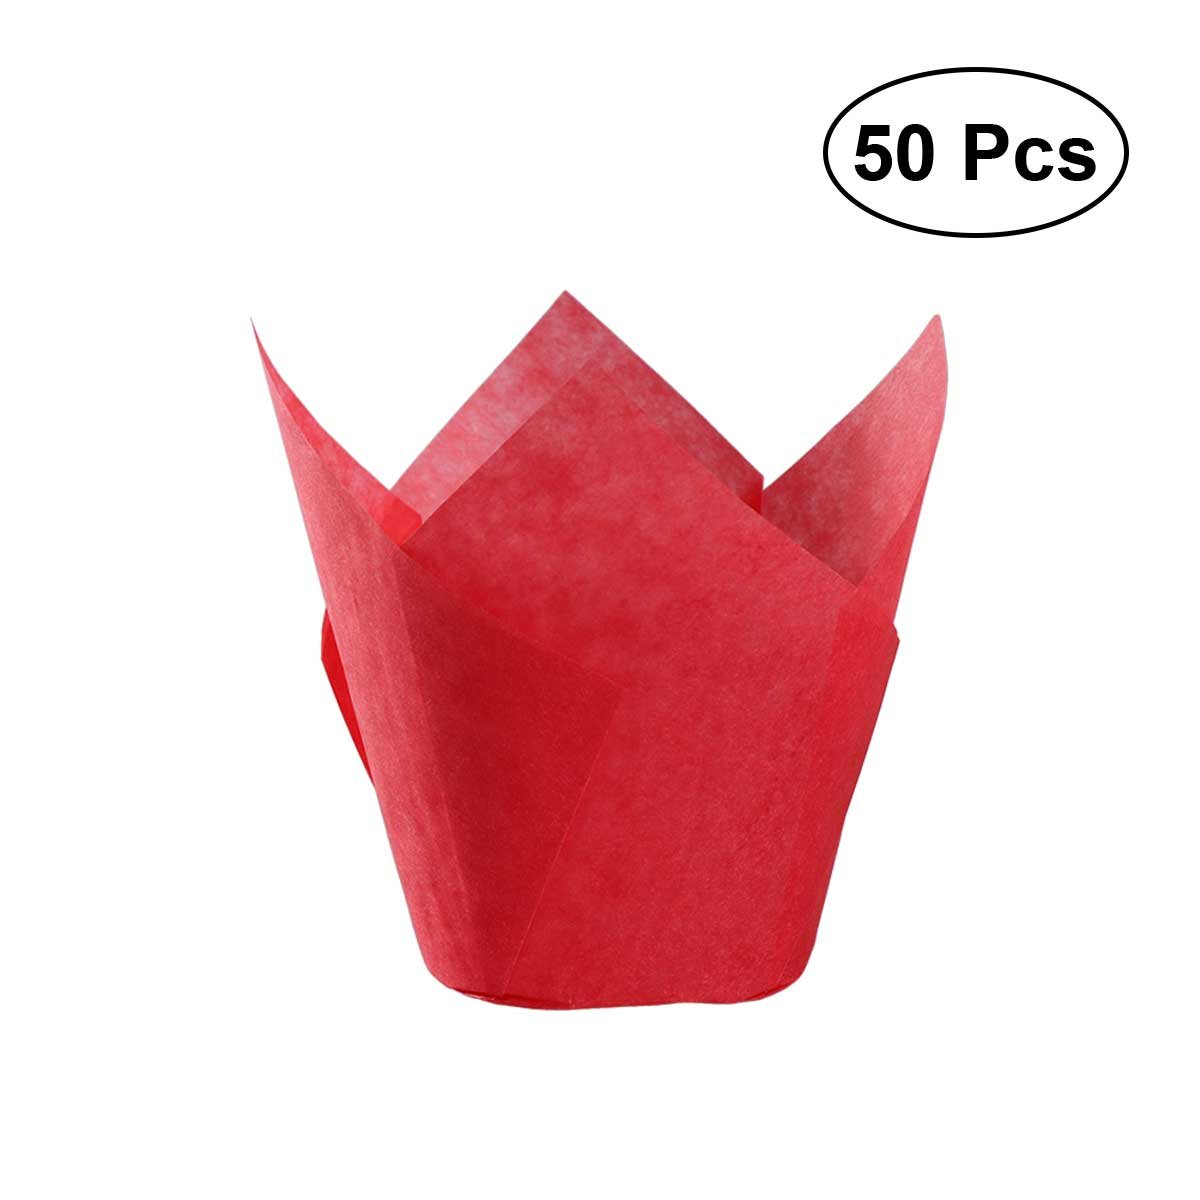 BESTOYARD 50Pcs Cupcake Wrappers Baking Cups Tulip Shape Liners Muffin Cake Cup Party Favors - Orange BESTONZON